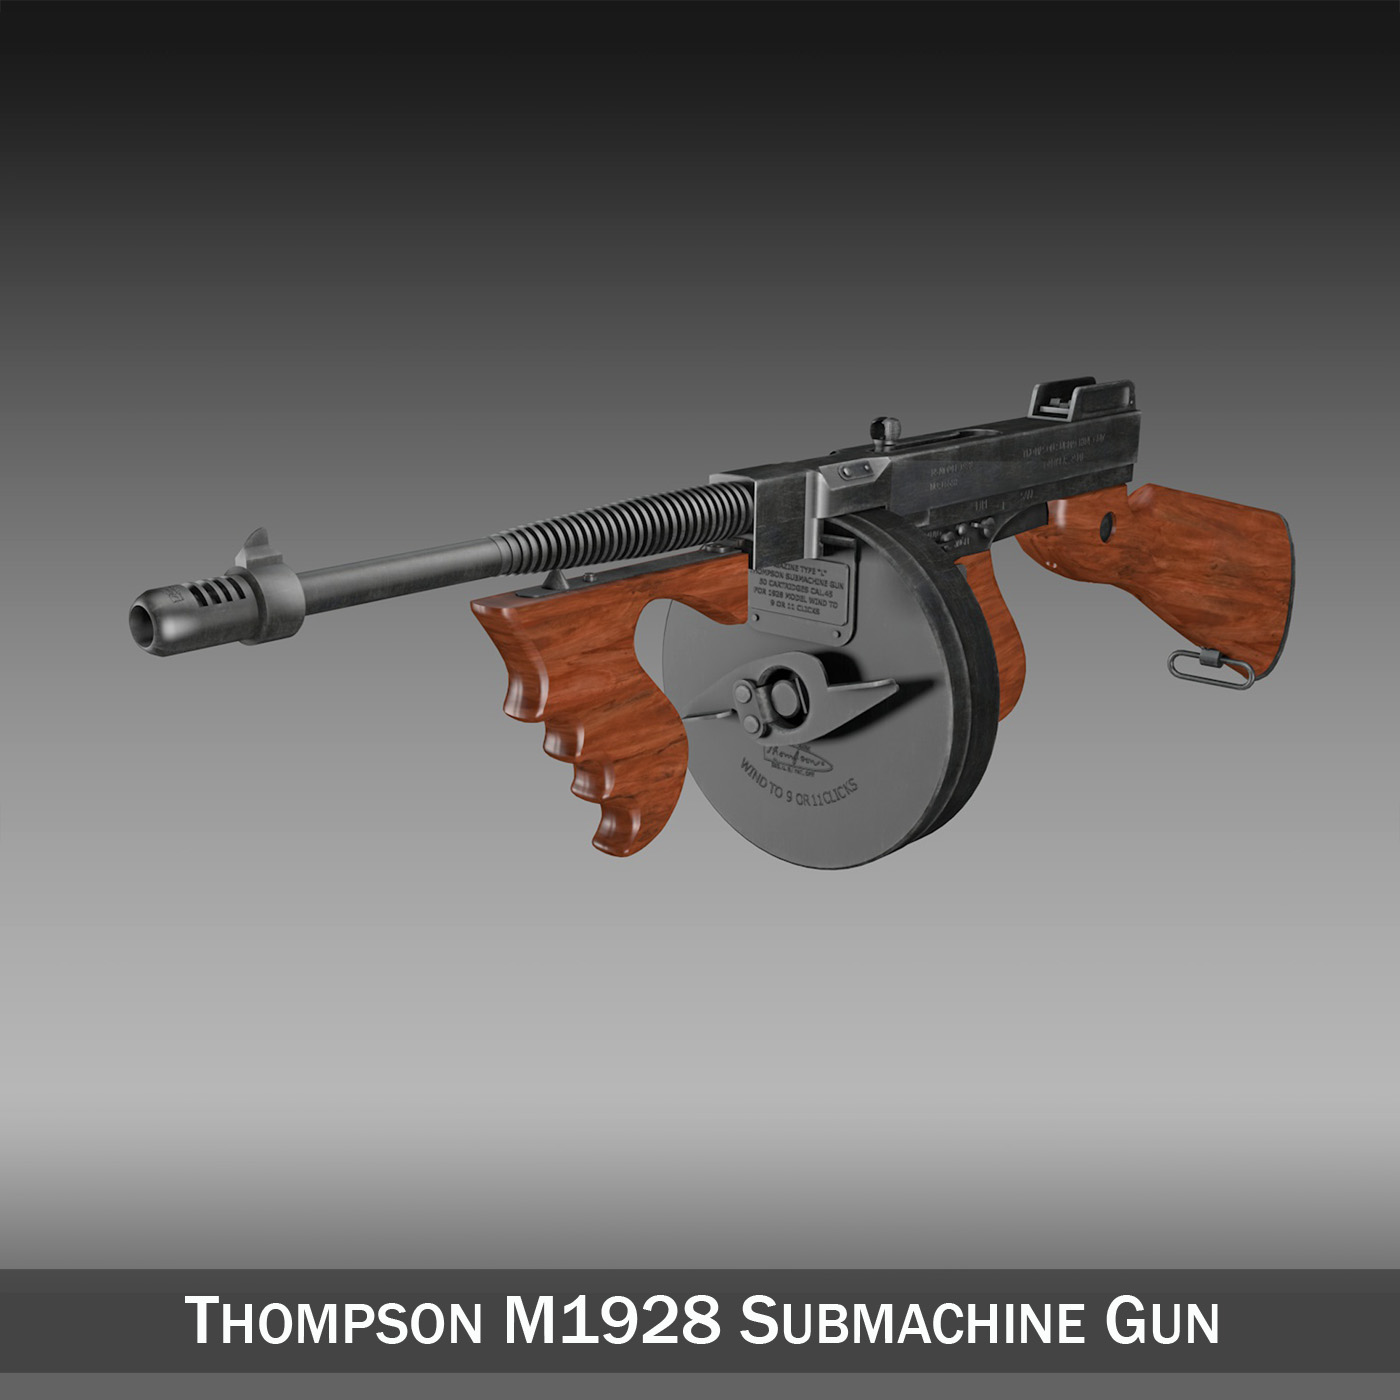 thompson model 1928 submachine gun 3d model 3ds c4d lwo obj 264684